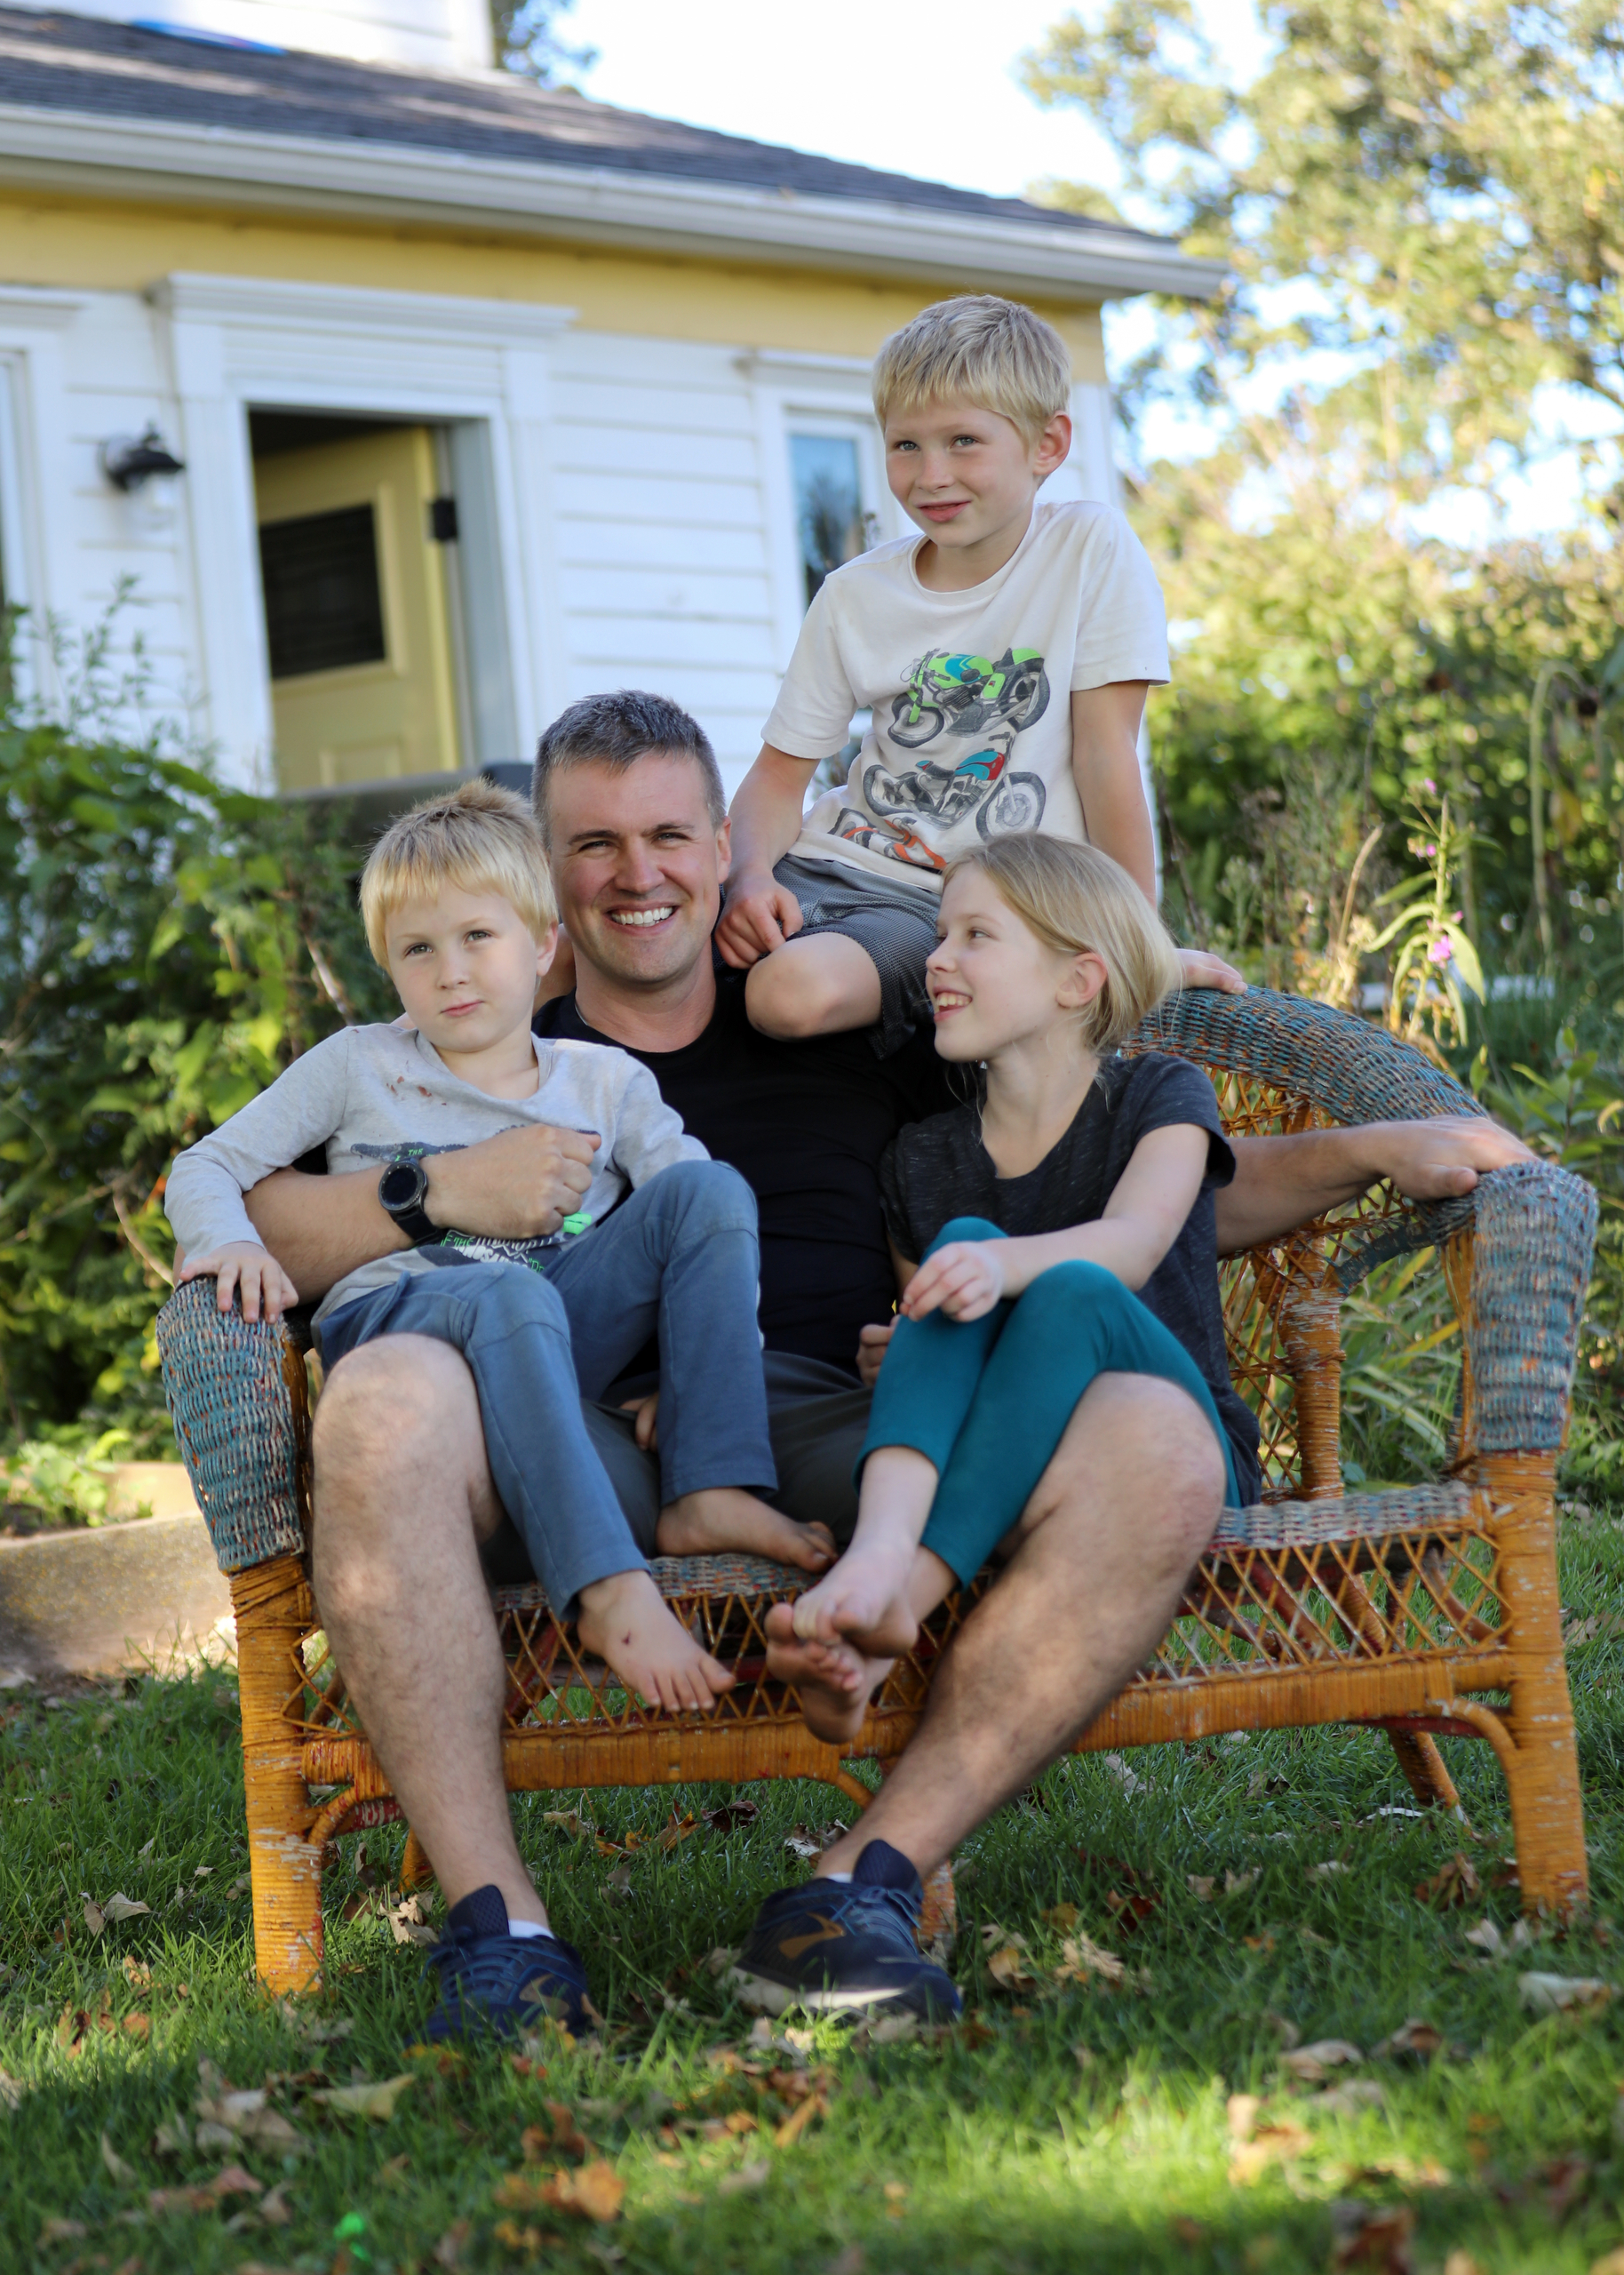 Matt Millar is seen with his children, from left, Matthias, 5, Adara, 10, and Sterling, 7, outside his house in Blue Mounds, Wis., on Sept. 18, 2020. Matt Millar says he prefers a combination of in-person and online learning for his children. But for now, they must learn from home after the Barneveld School District closed its building because of a case of COVID-19.